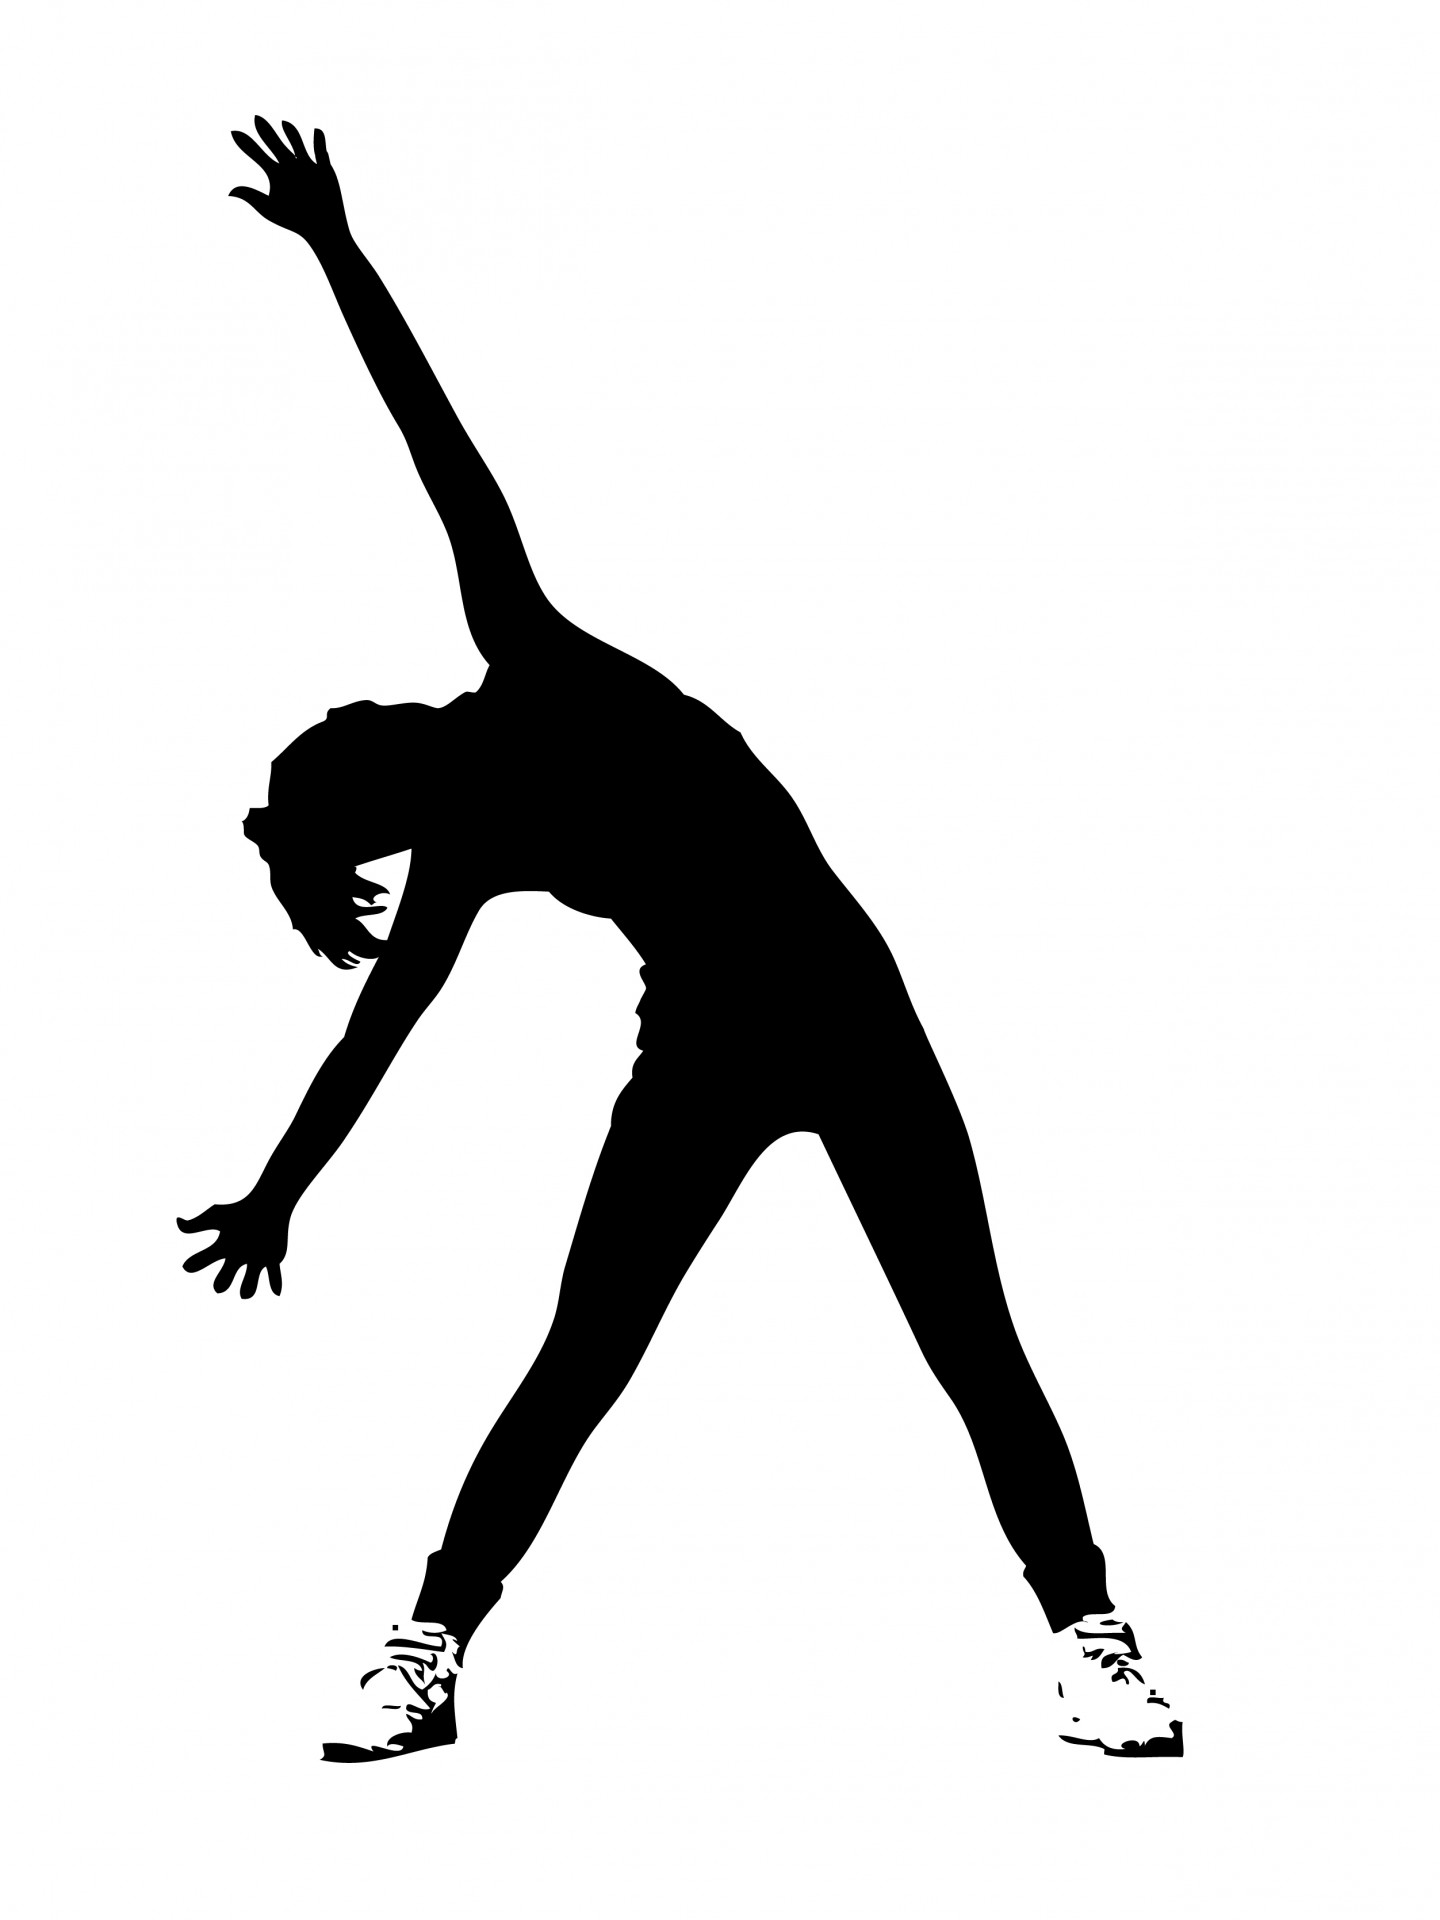 Cliparts aerobic jpg black and white library Cliparts aerobic - ClipartFest jpg black and white library